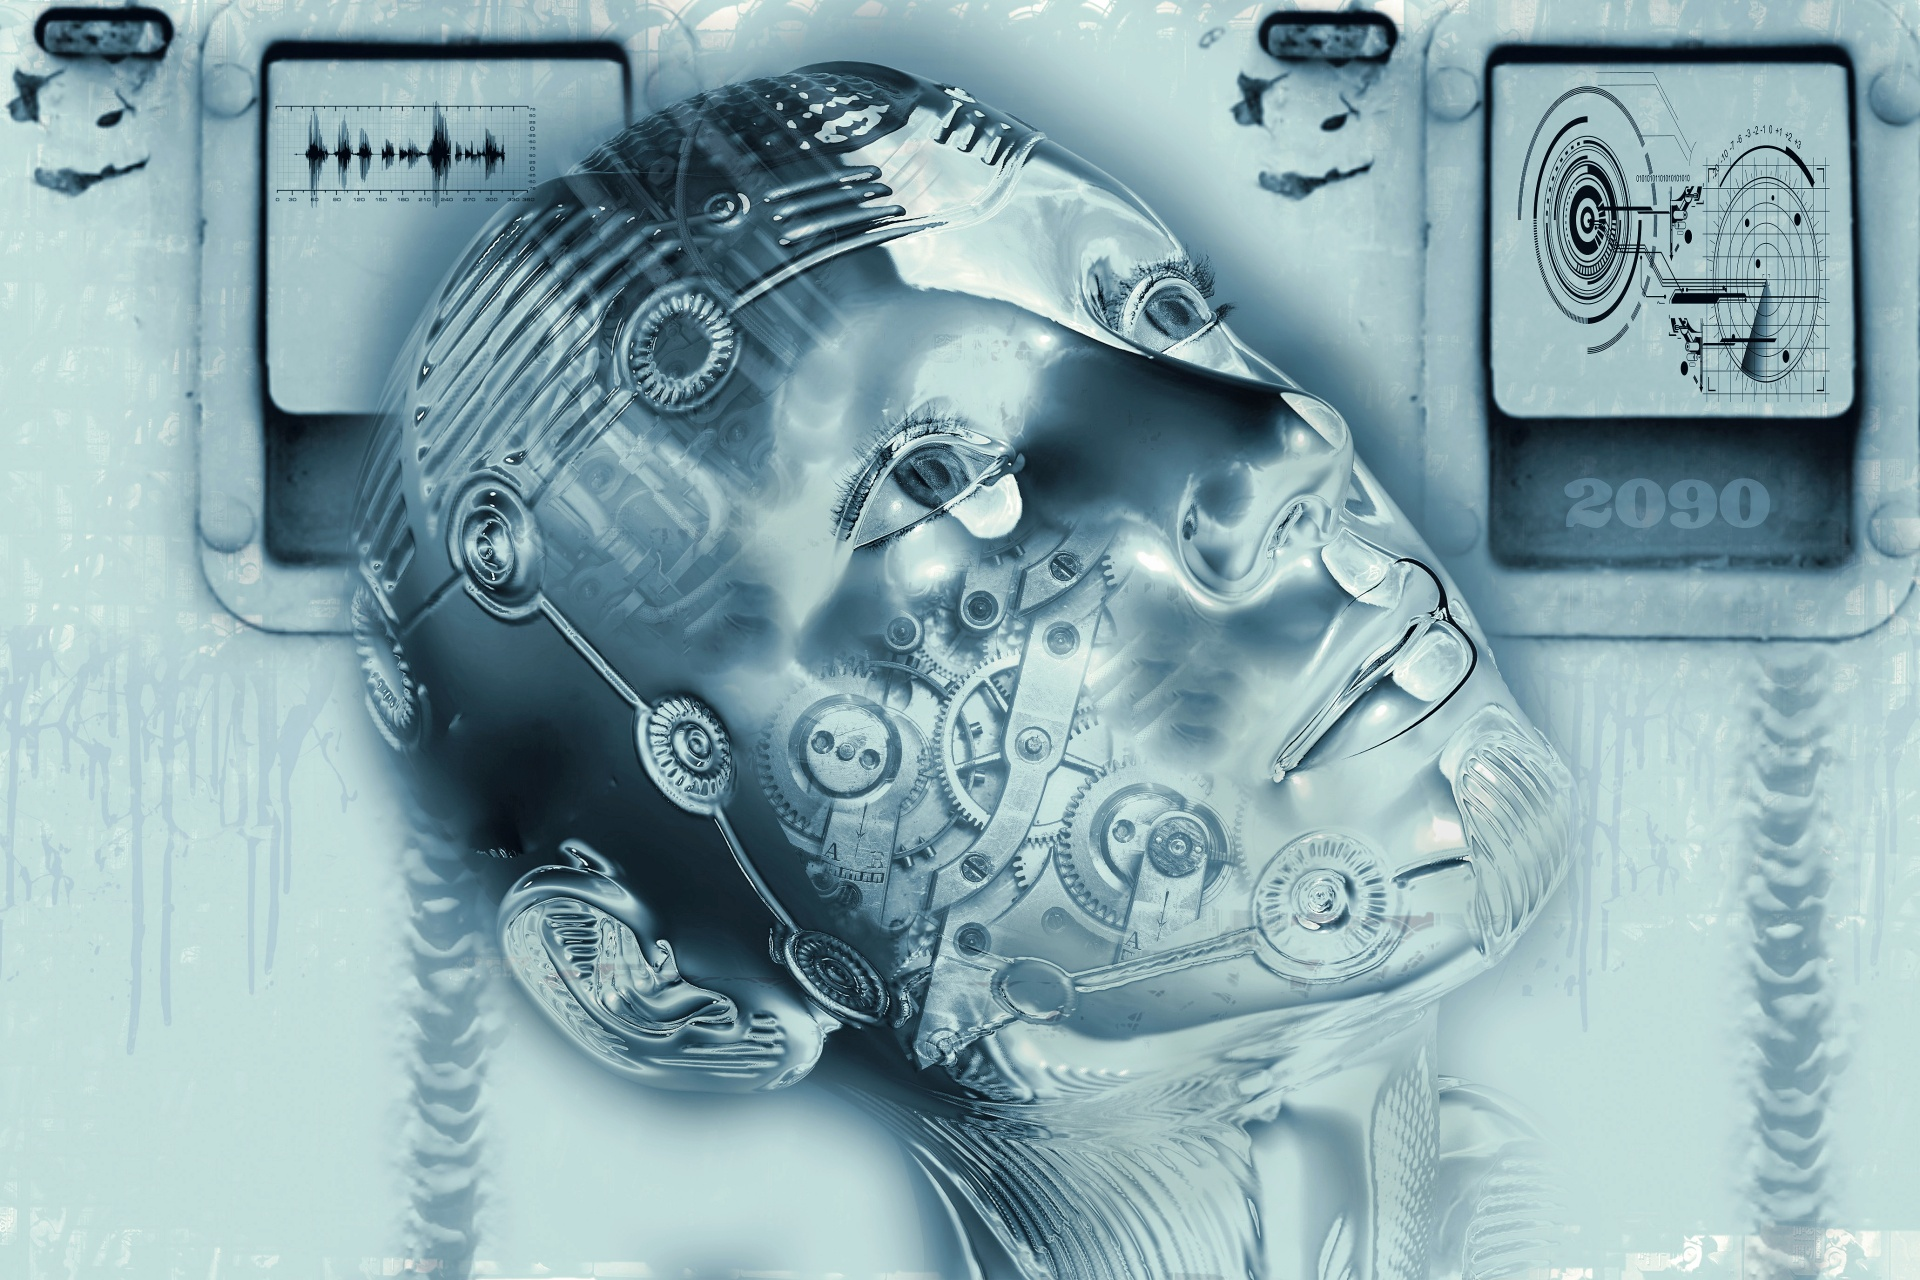 Should Music Created by Artificial Intelligence Be Protected by Copyright? - Office of Copyright